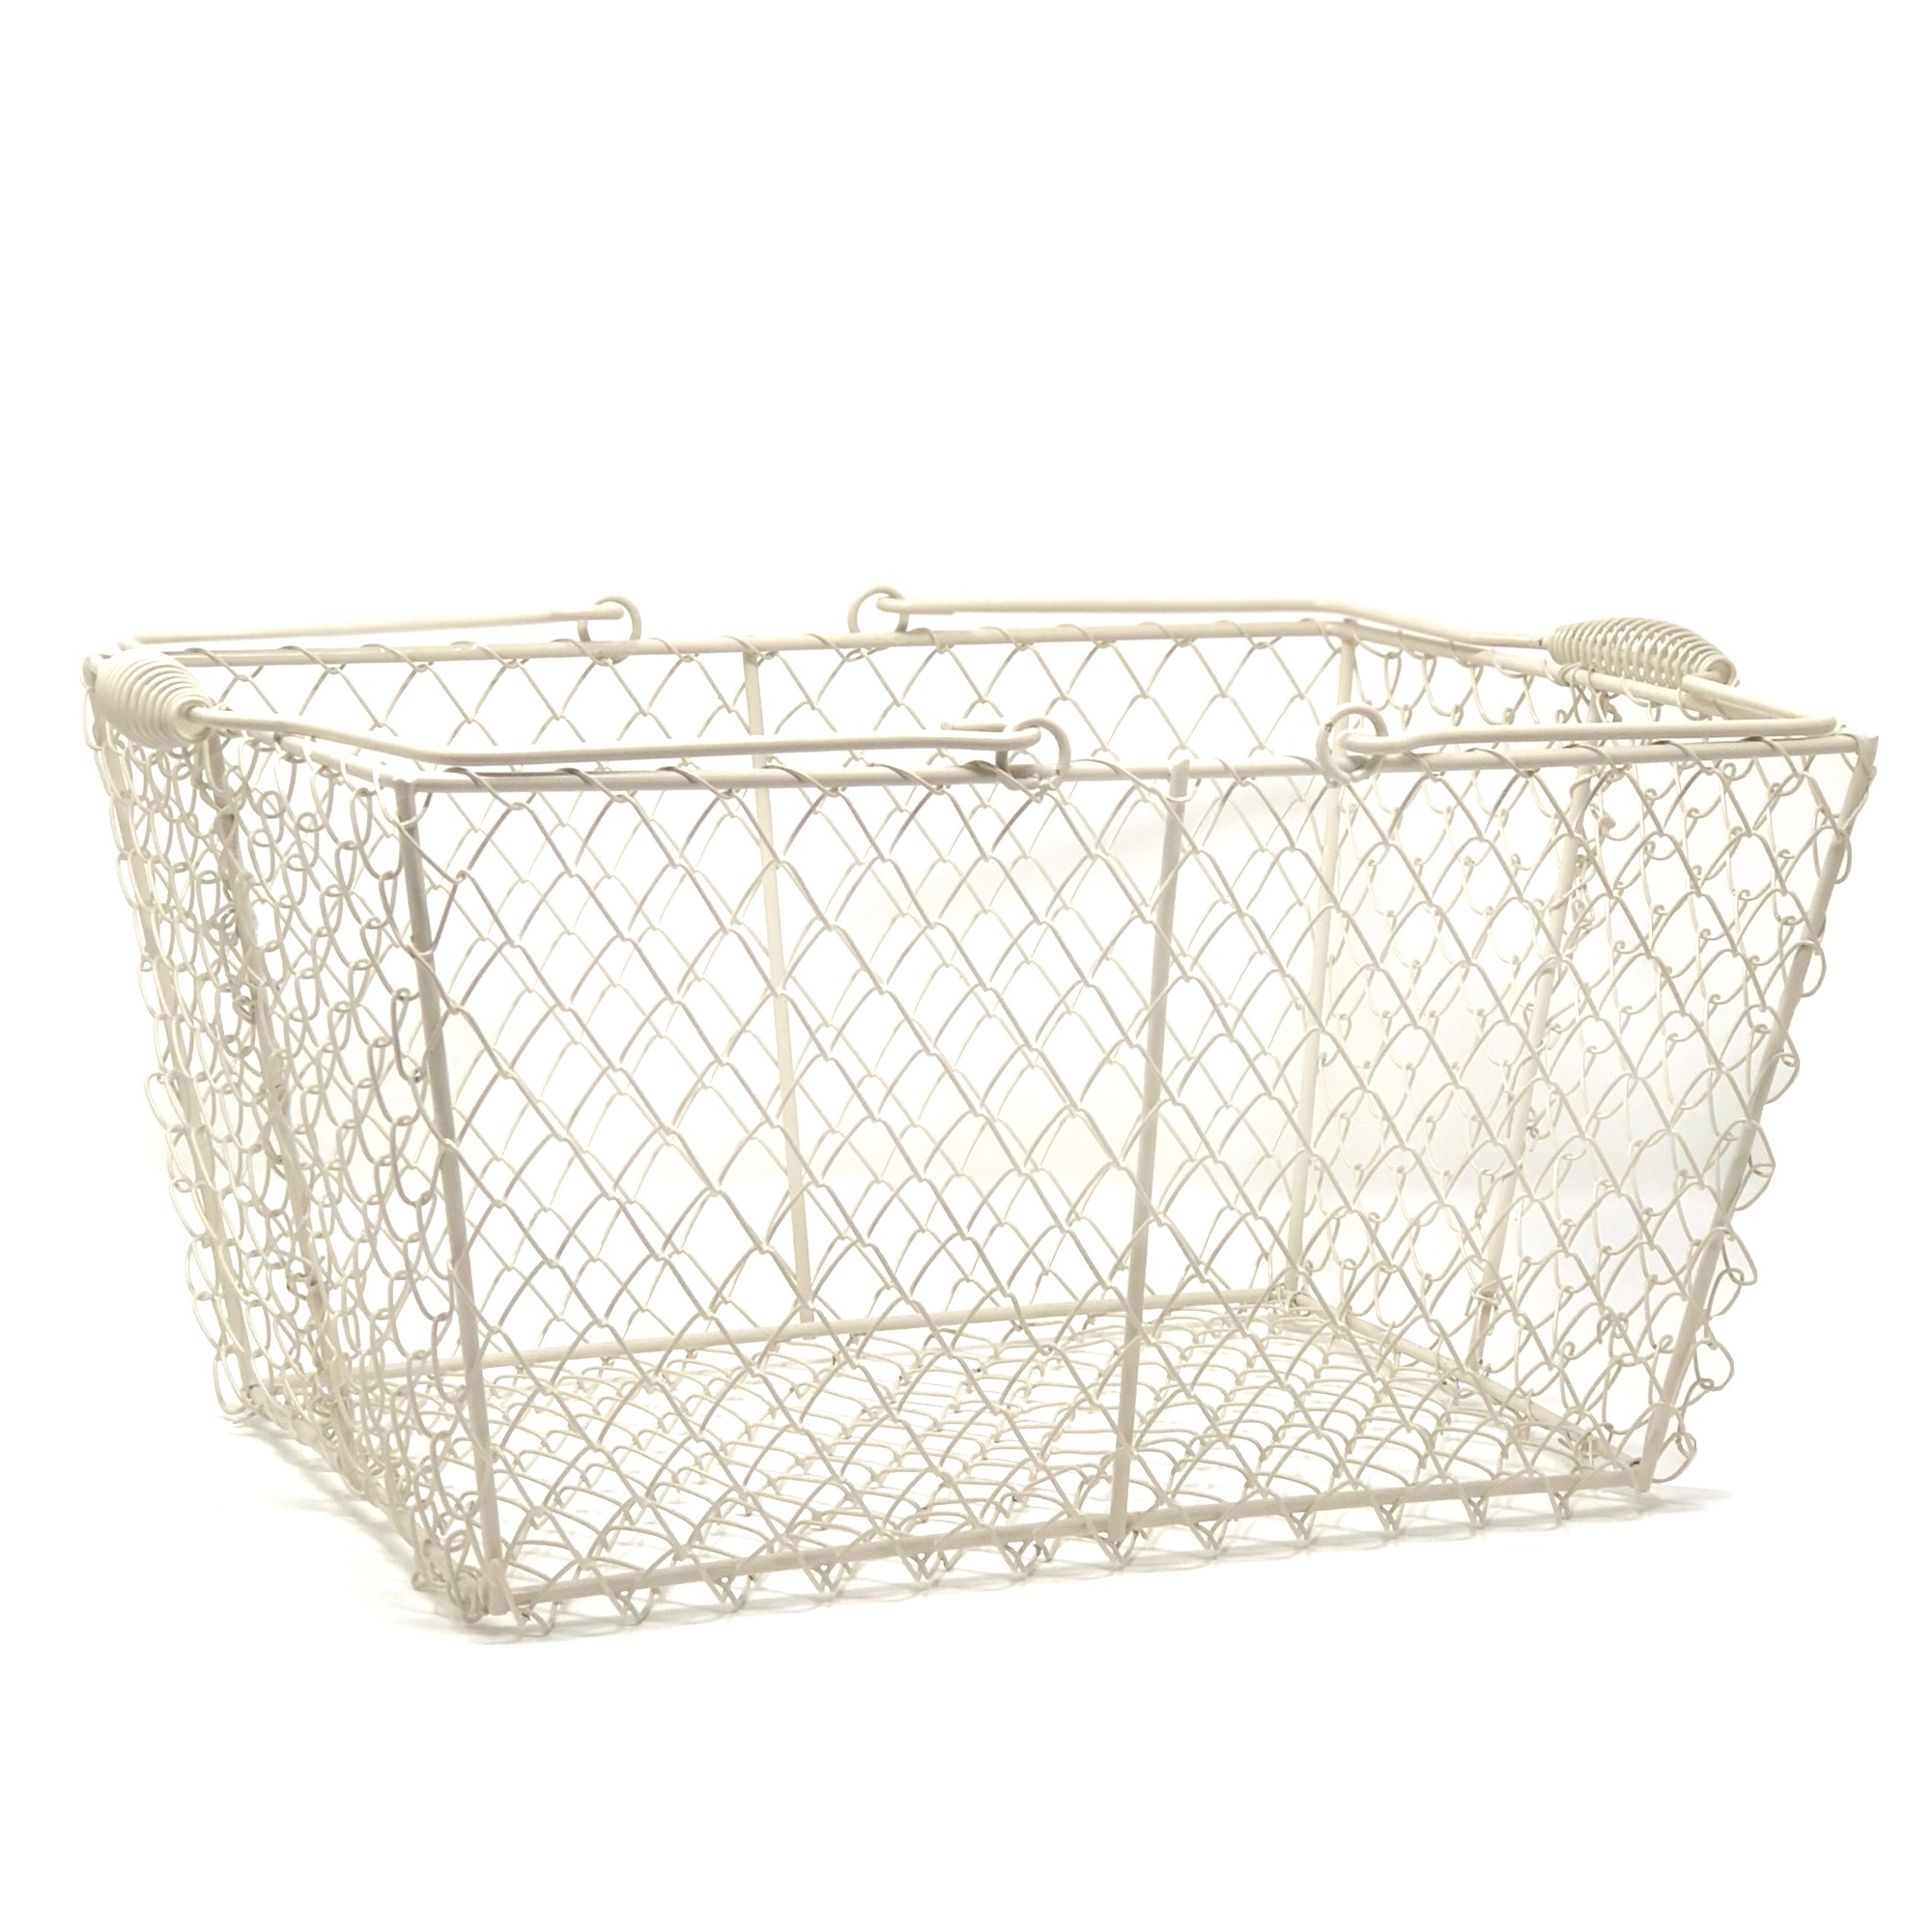 Rectangular Wire Mesh | Wire Rectangular Mesh With Swing Handle Cream The Lucky Clover